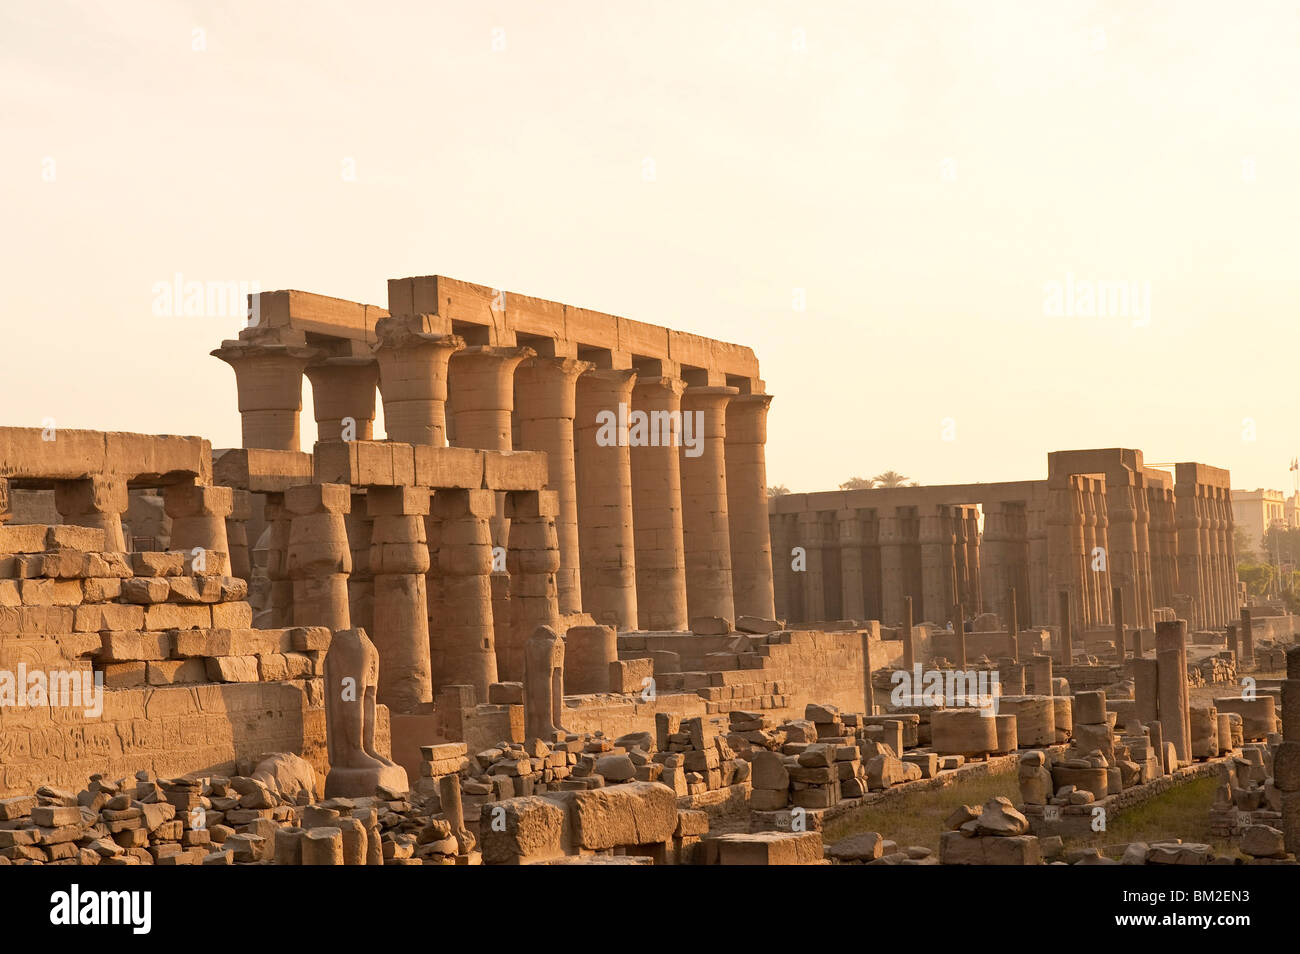 Luxor Temple, Luxor, Thebes, UNESCO World Heritage Site, Egypt - Stock Image